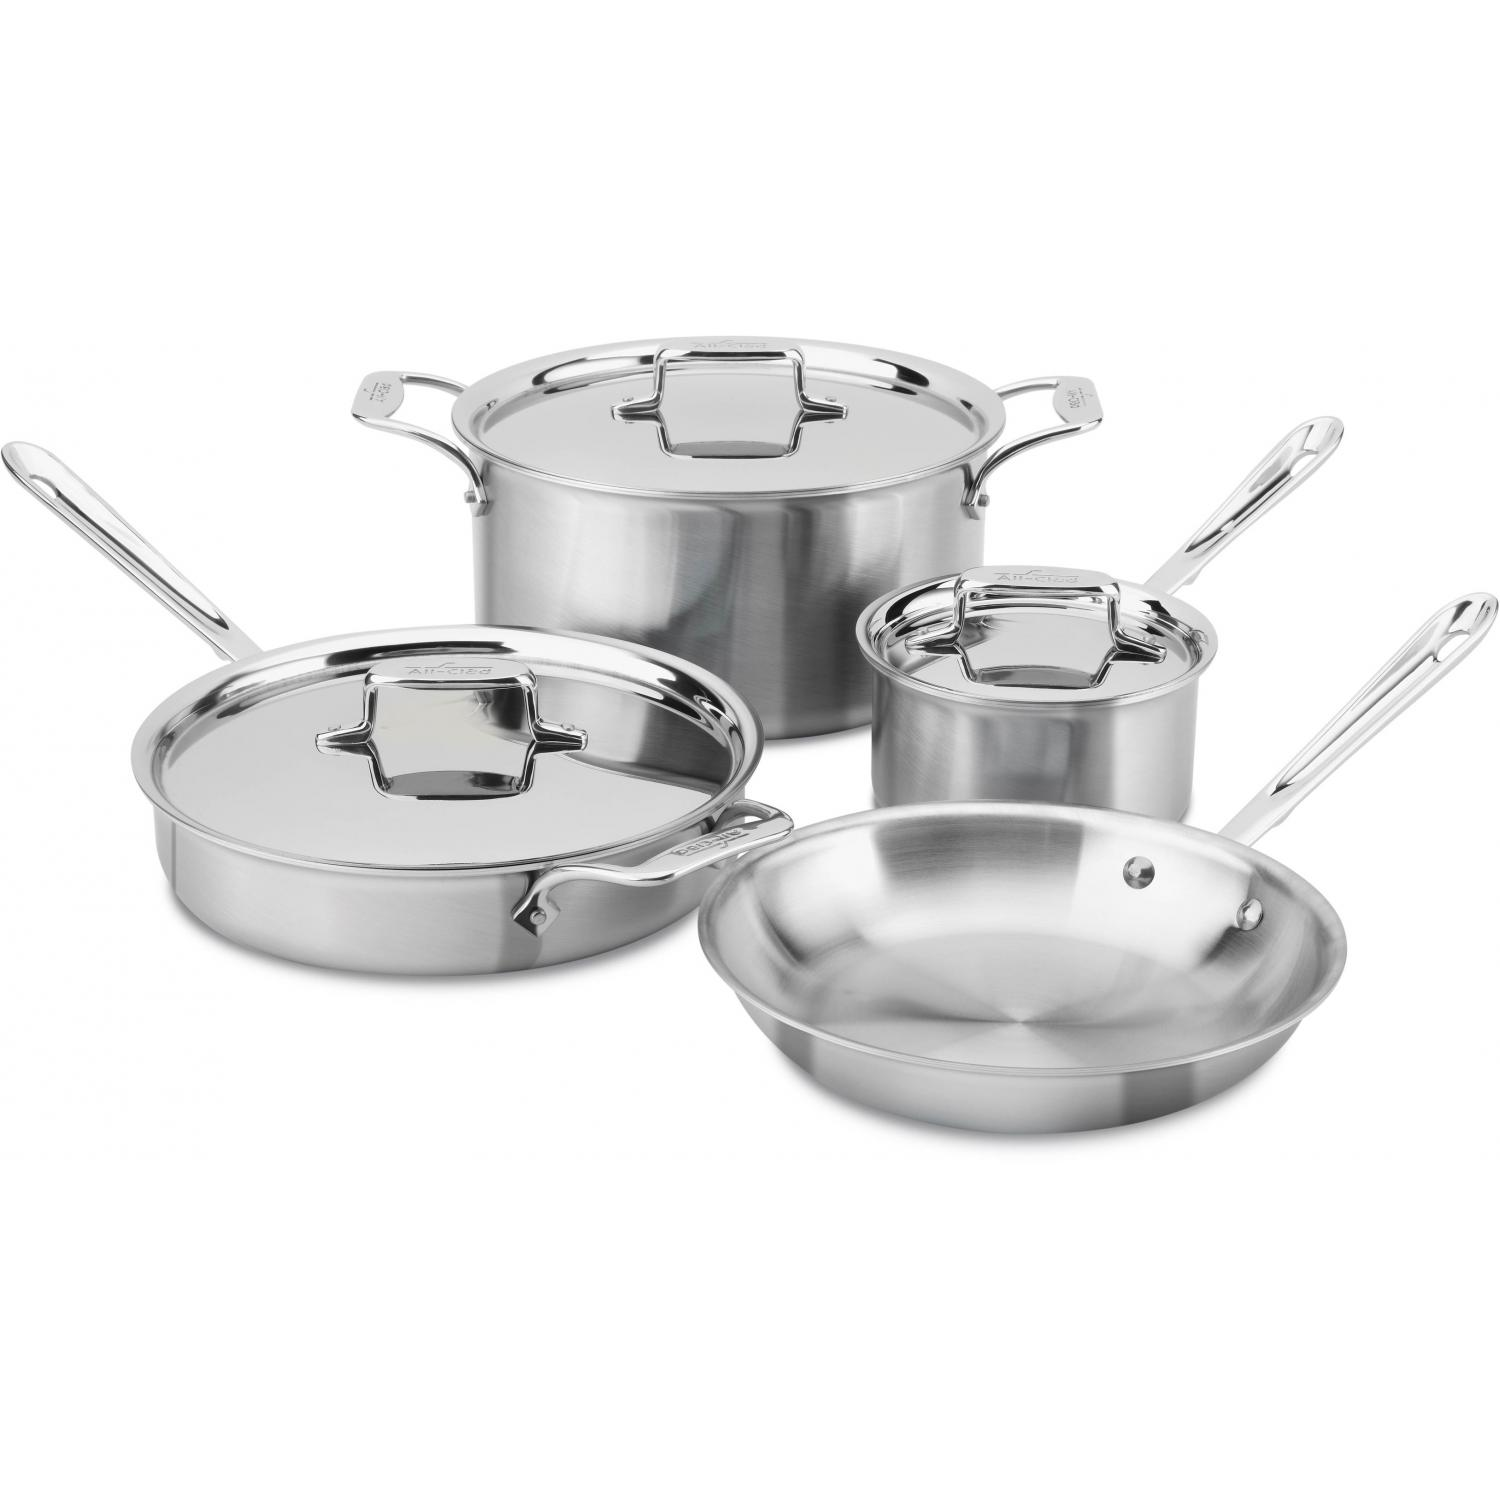 All-Clad D5 Stainless 7-Piece Cookware Set